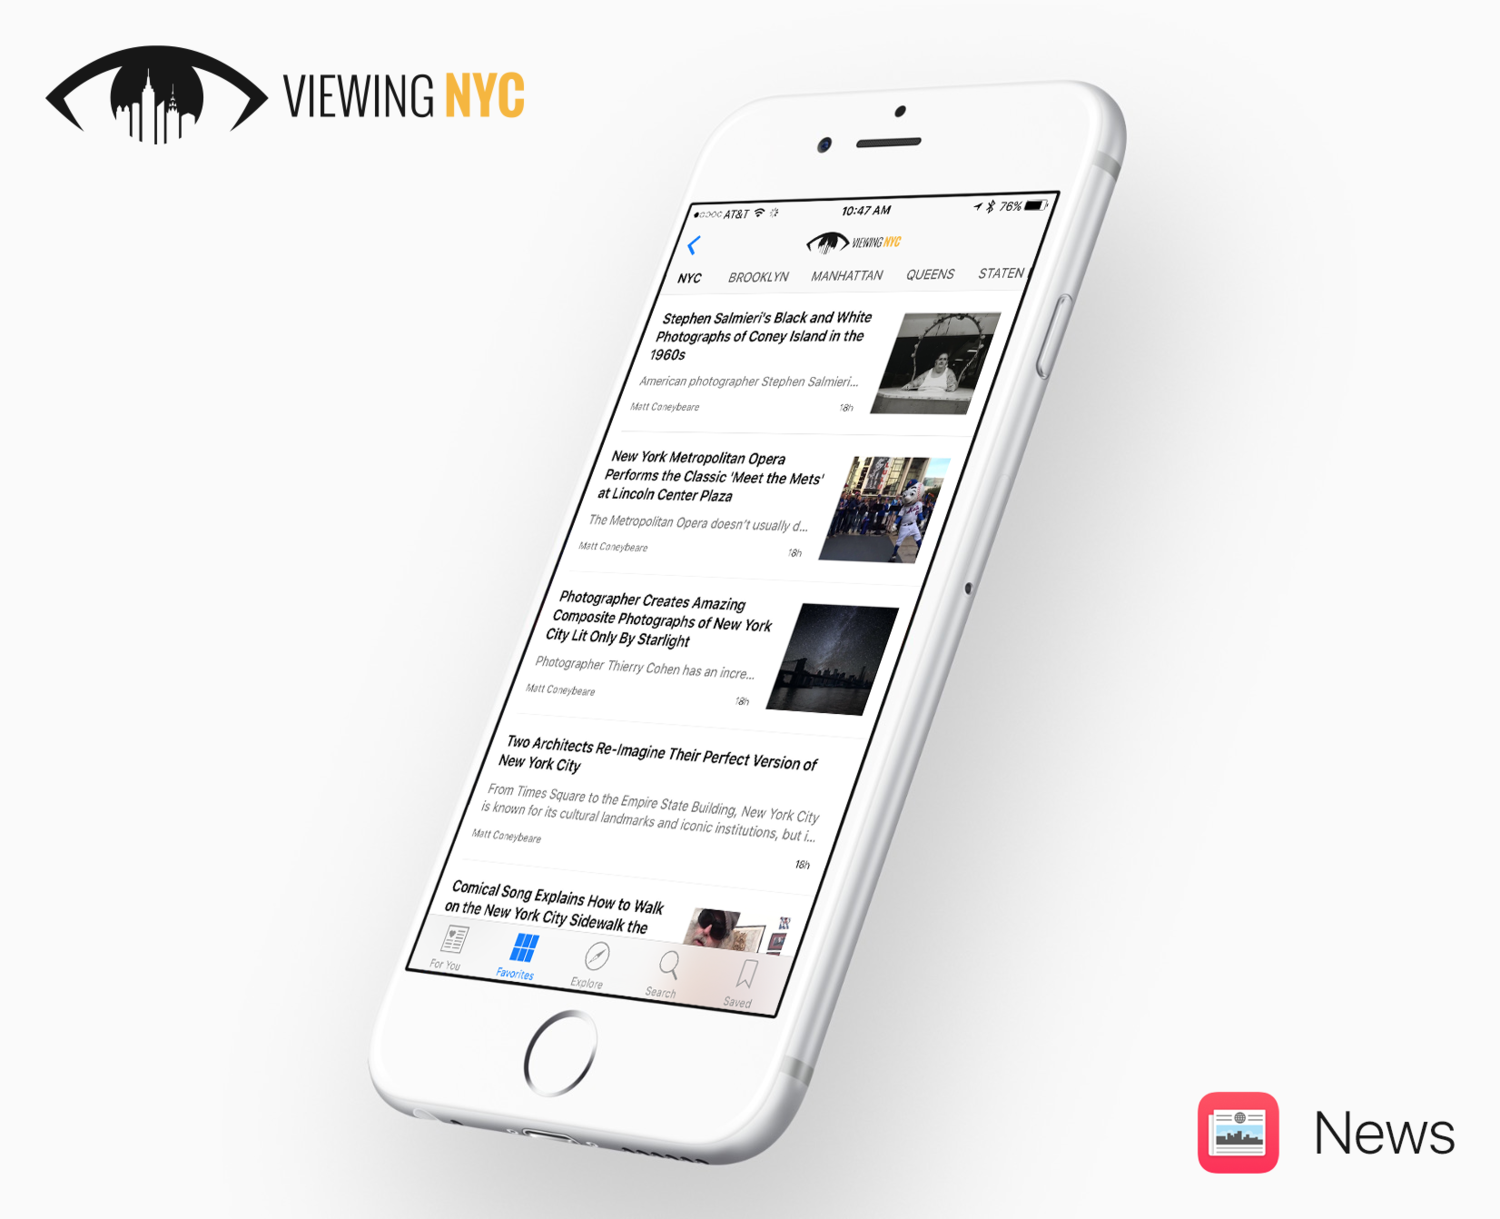 Viewing NYC on Apple News